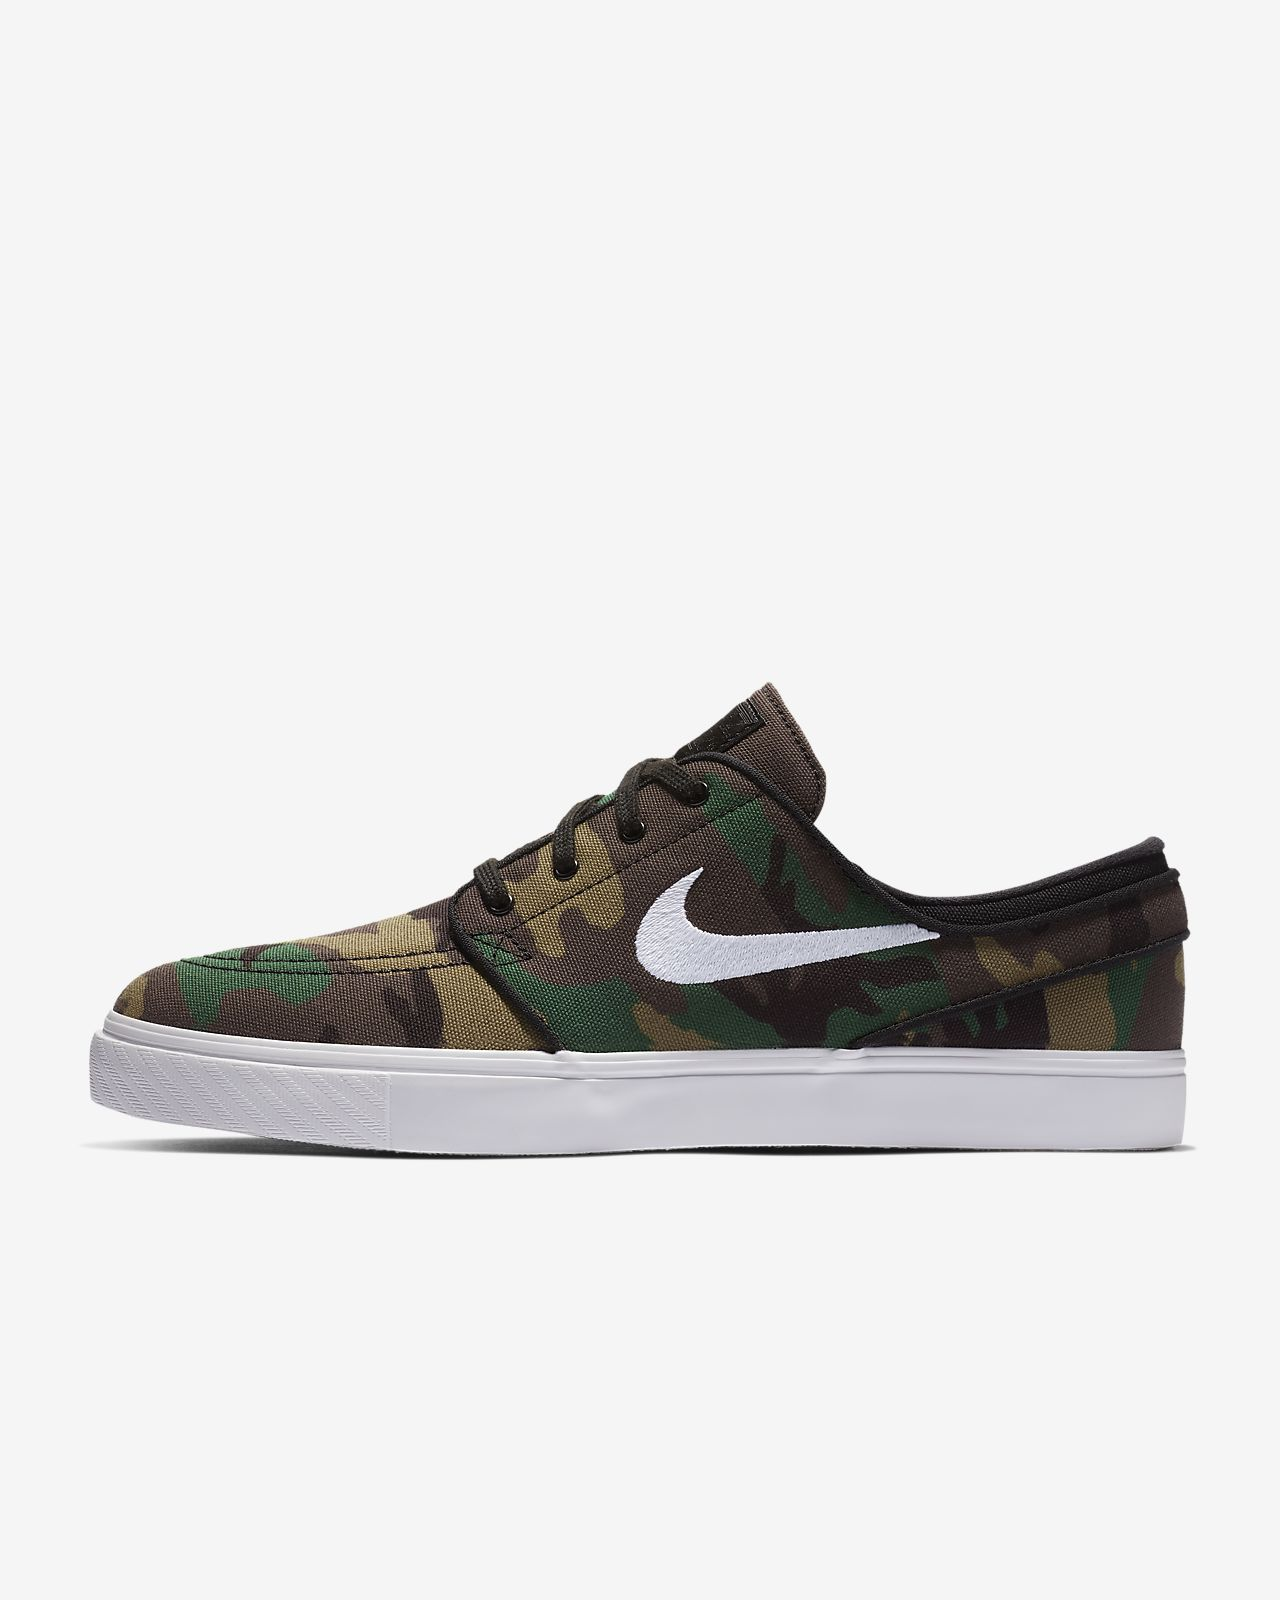 the best attitude 28a21 fd1bb ... Nike SB Zoom Stefan Janoski Canvas Herren-Skateboardschuh